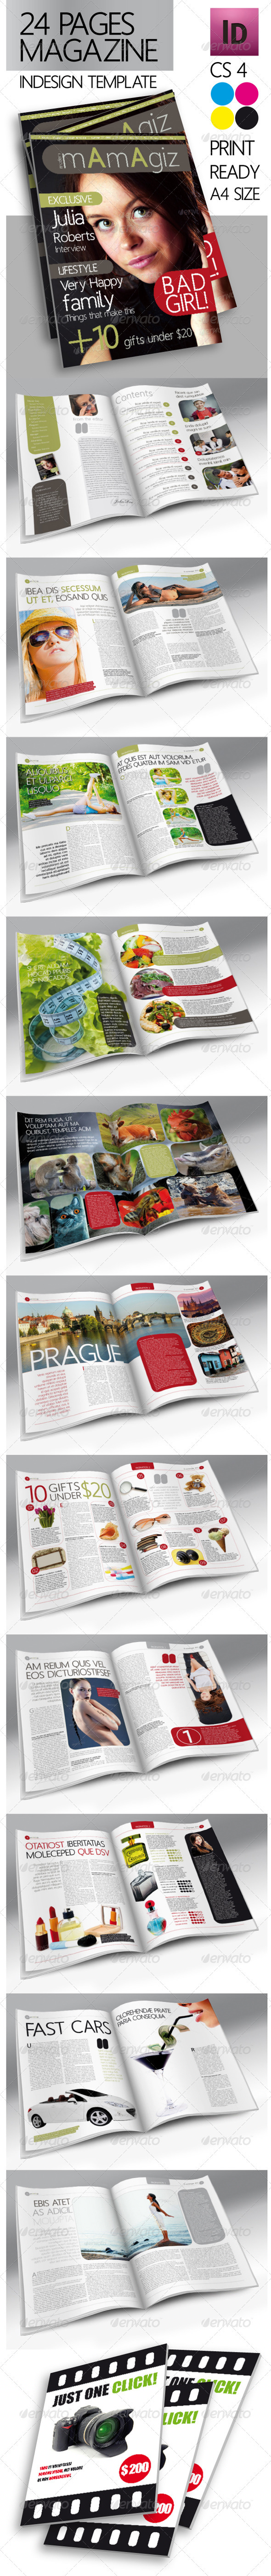 GraphicRiver 24 Pages Modern Magazine InDesign Template 2461242